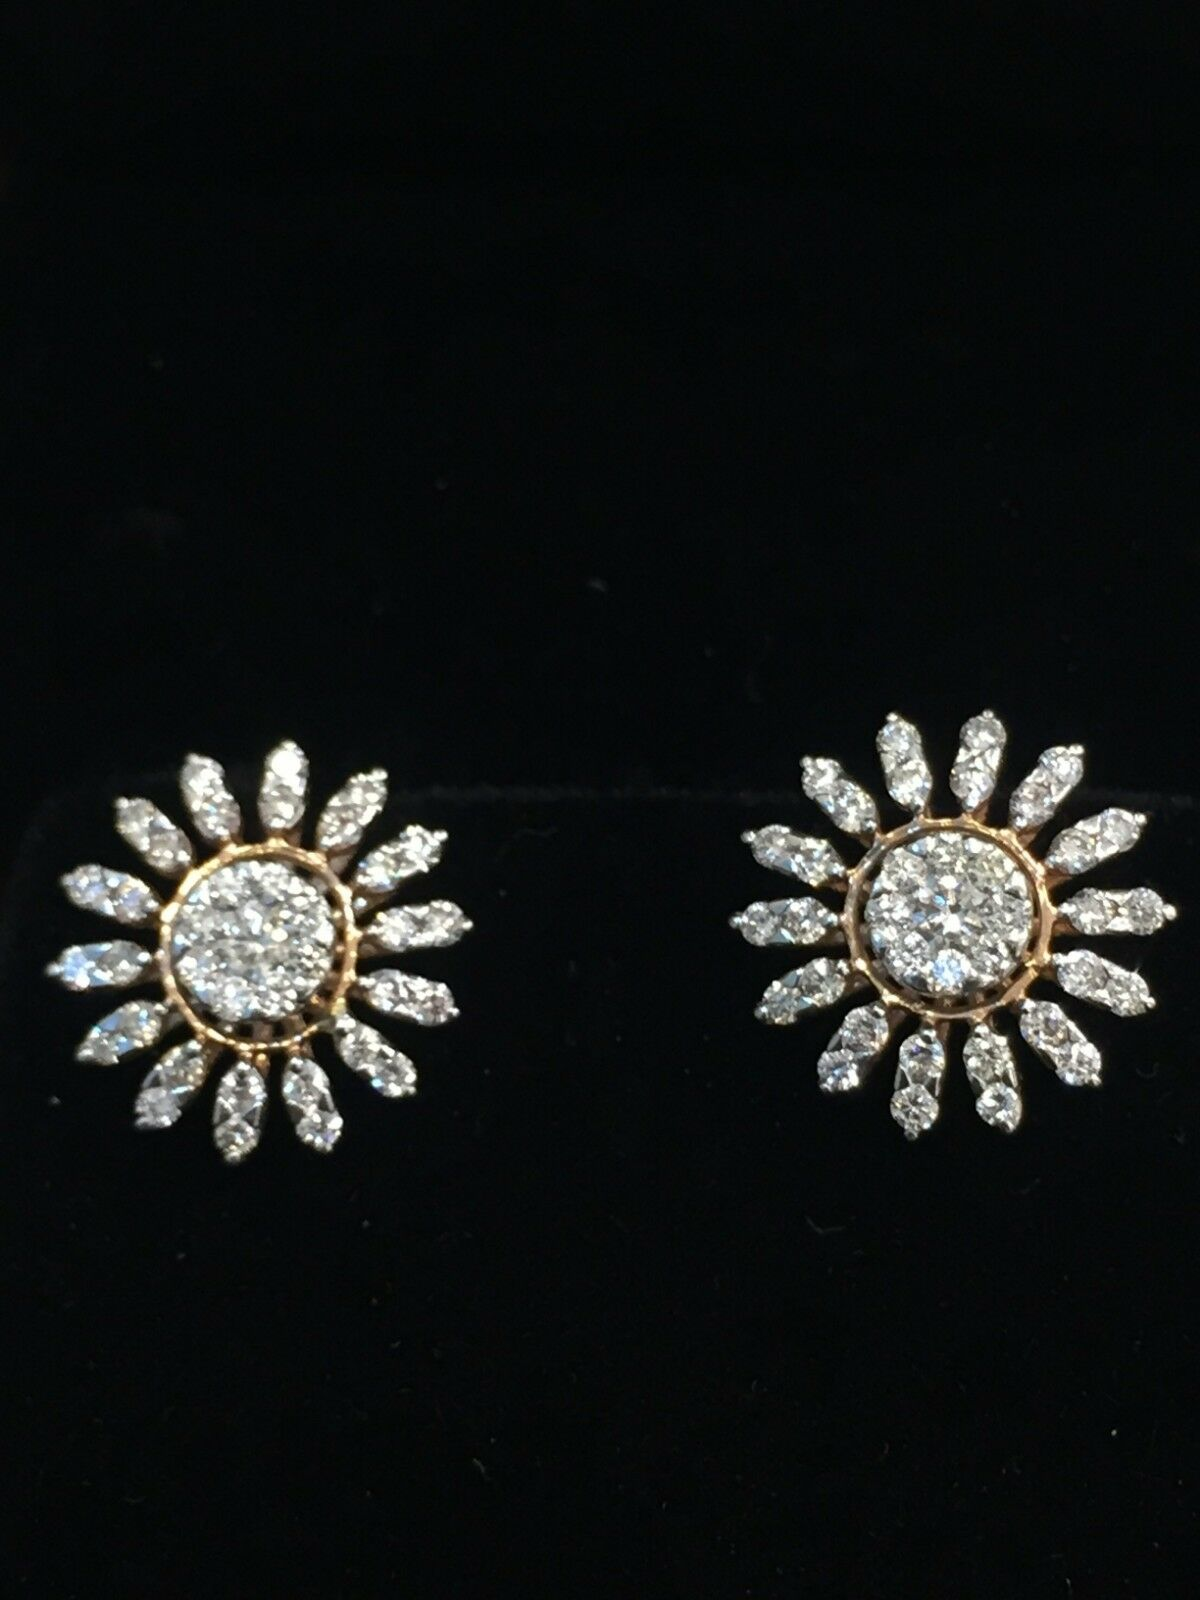 Pave 0.90 Cts Round Brilliant Cut Diamonds Stud Earrings In Fine 14K Yellow gold